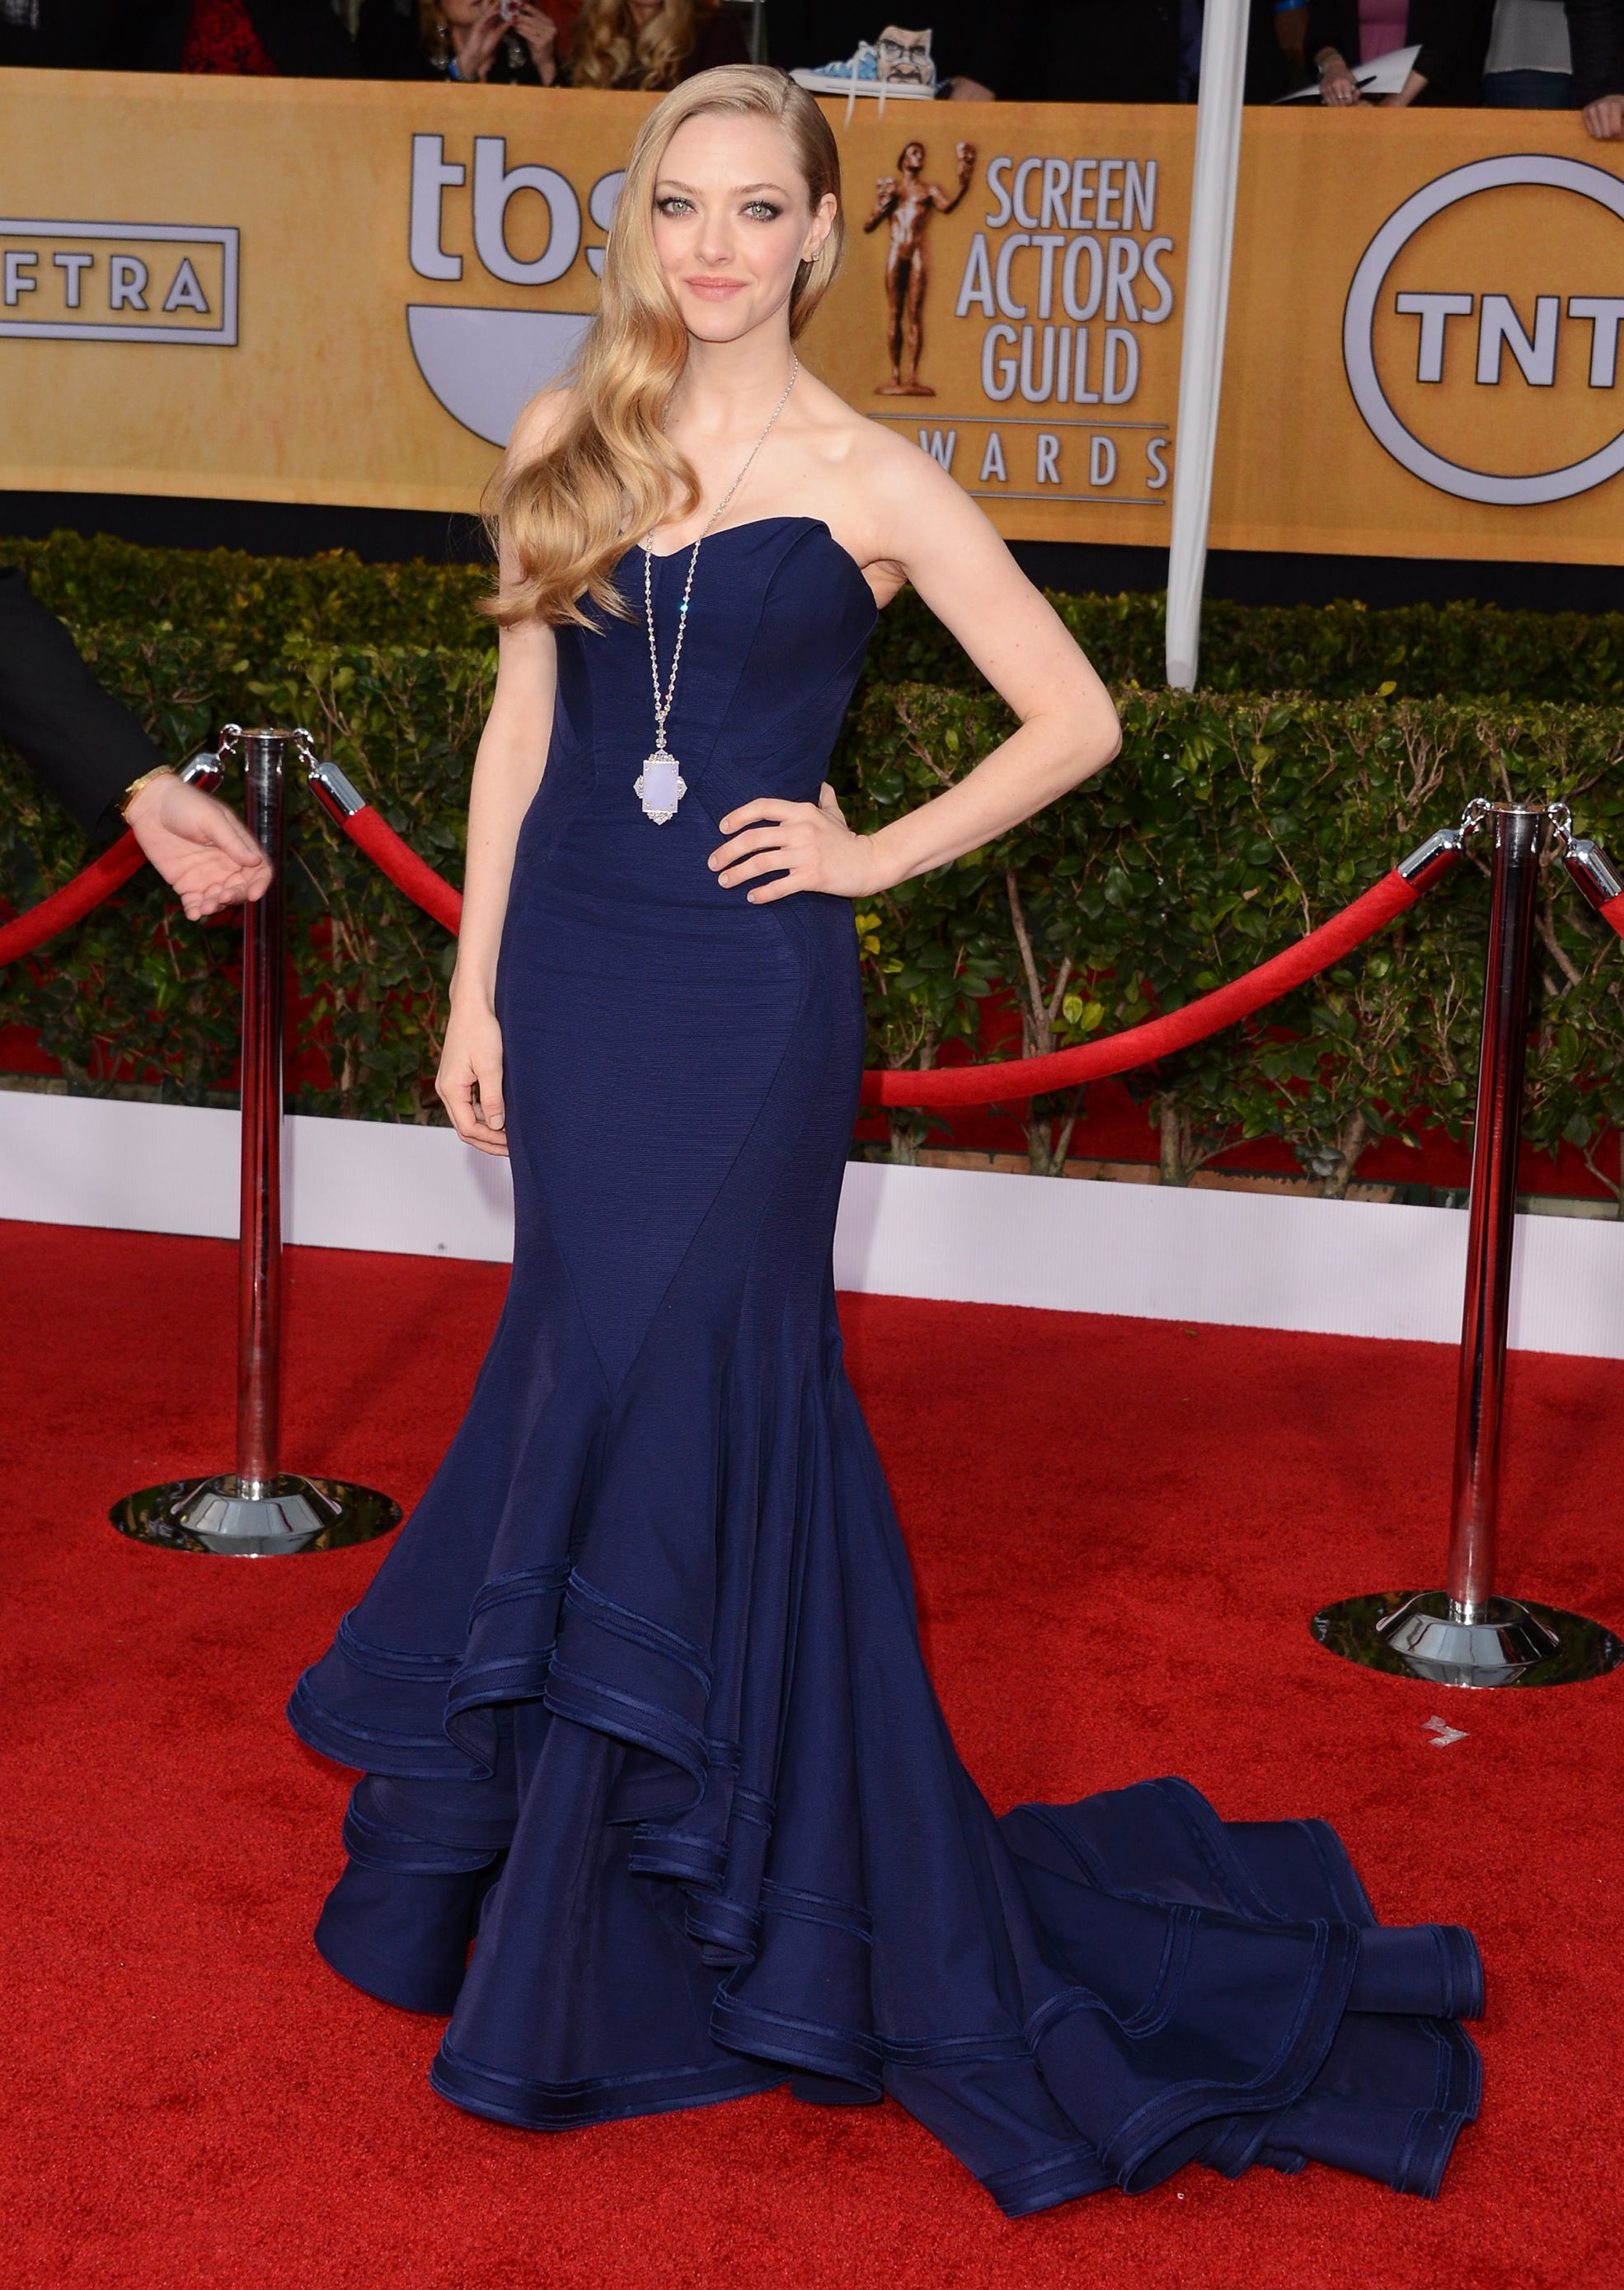 Posen gowen red carpet pinterest red carpet amanda and sag awards